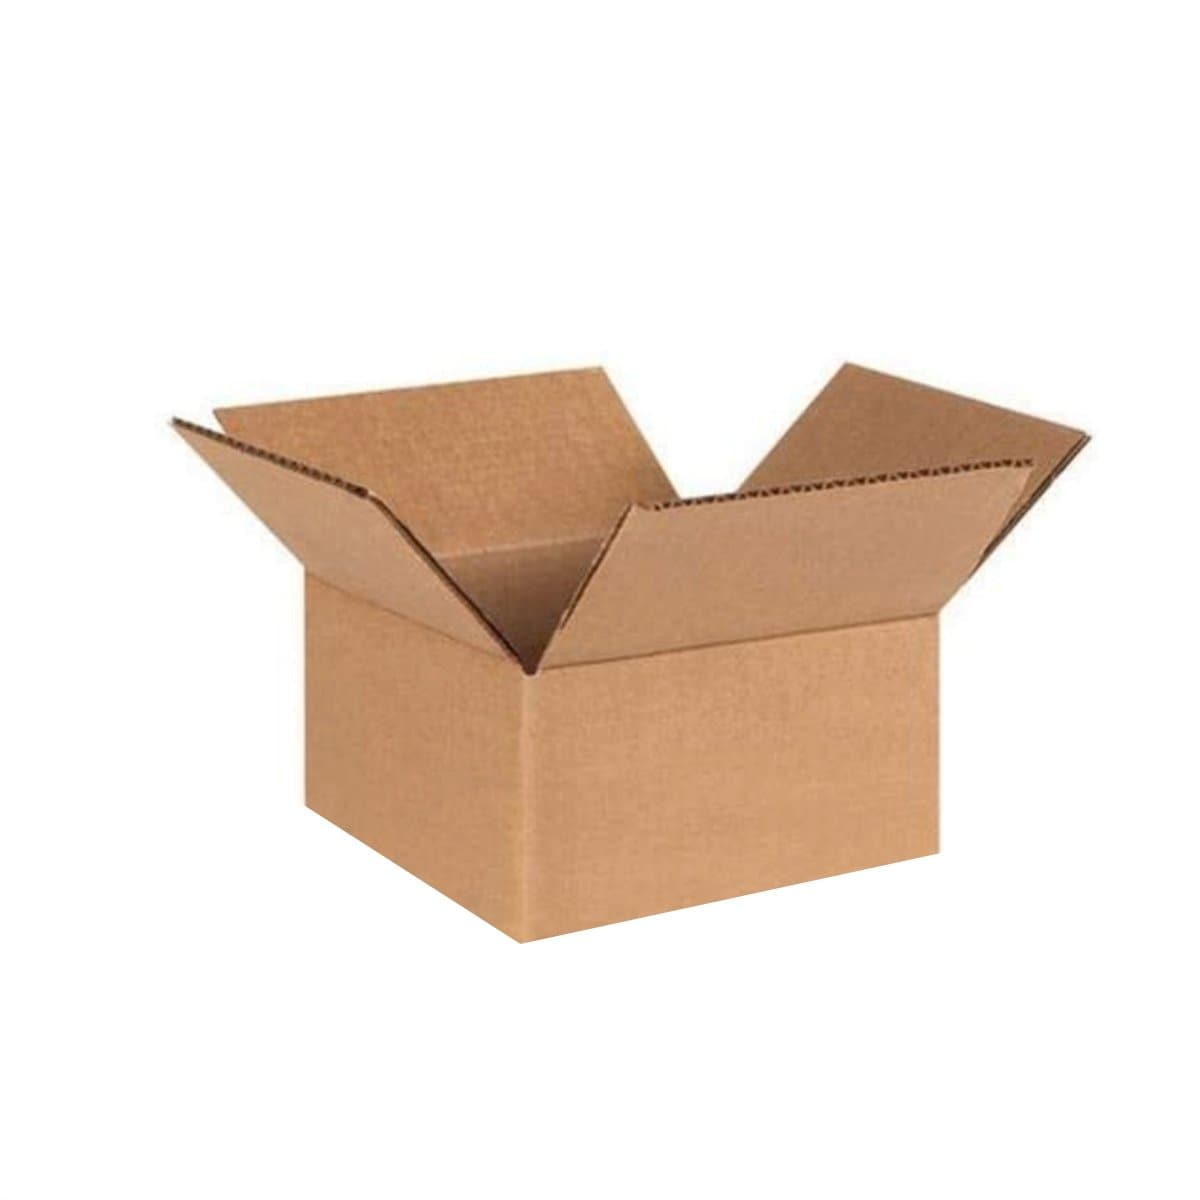 Corrugated Cardboard Storage Box, 45x45xH30cm